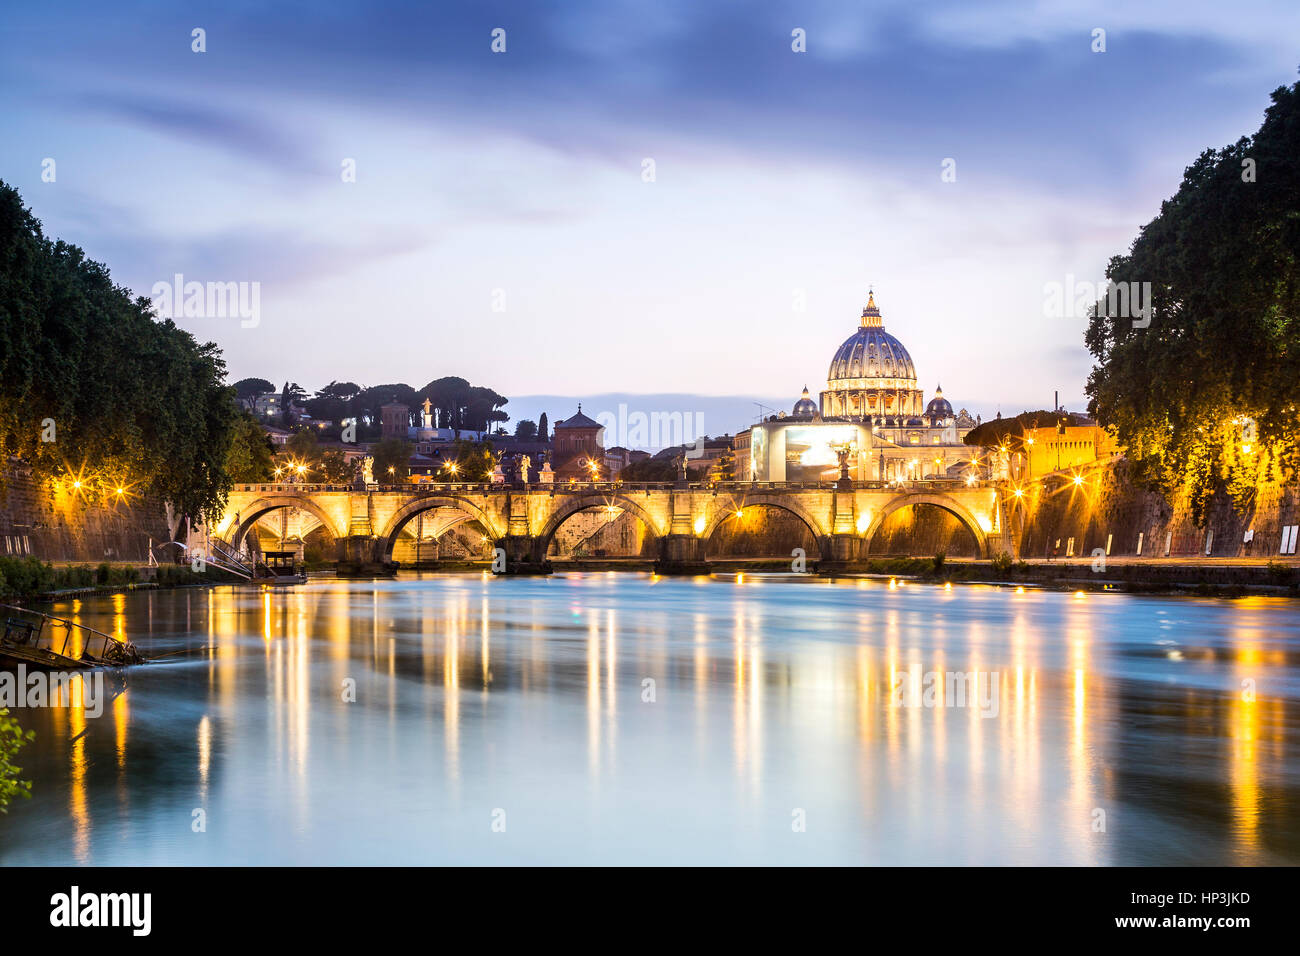 Saint Peter's Basilica with bridge over Tiber, dusk, Rome, Italy - Stock Image